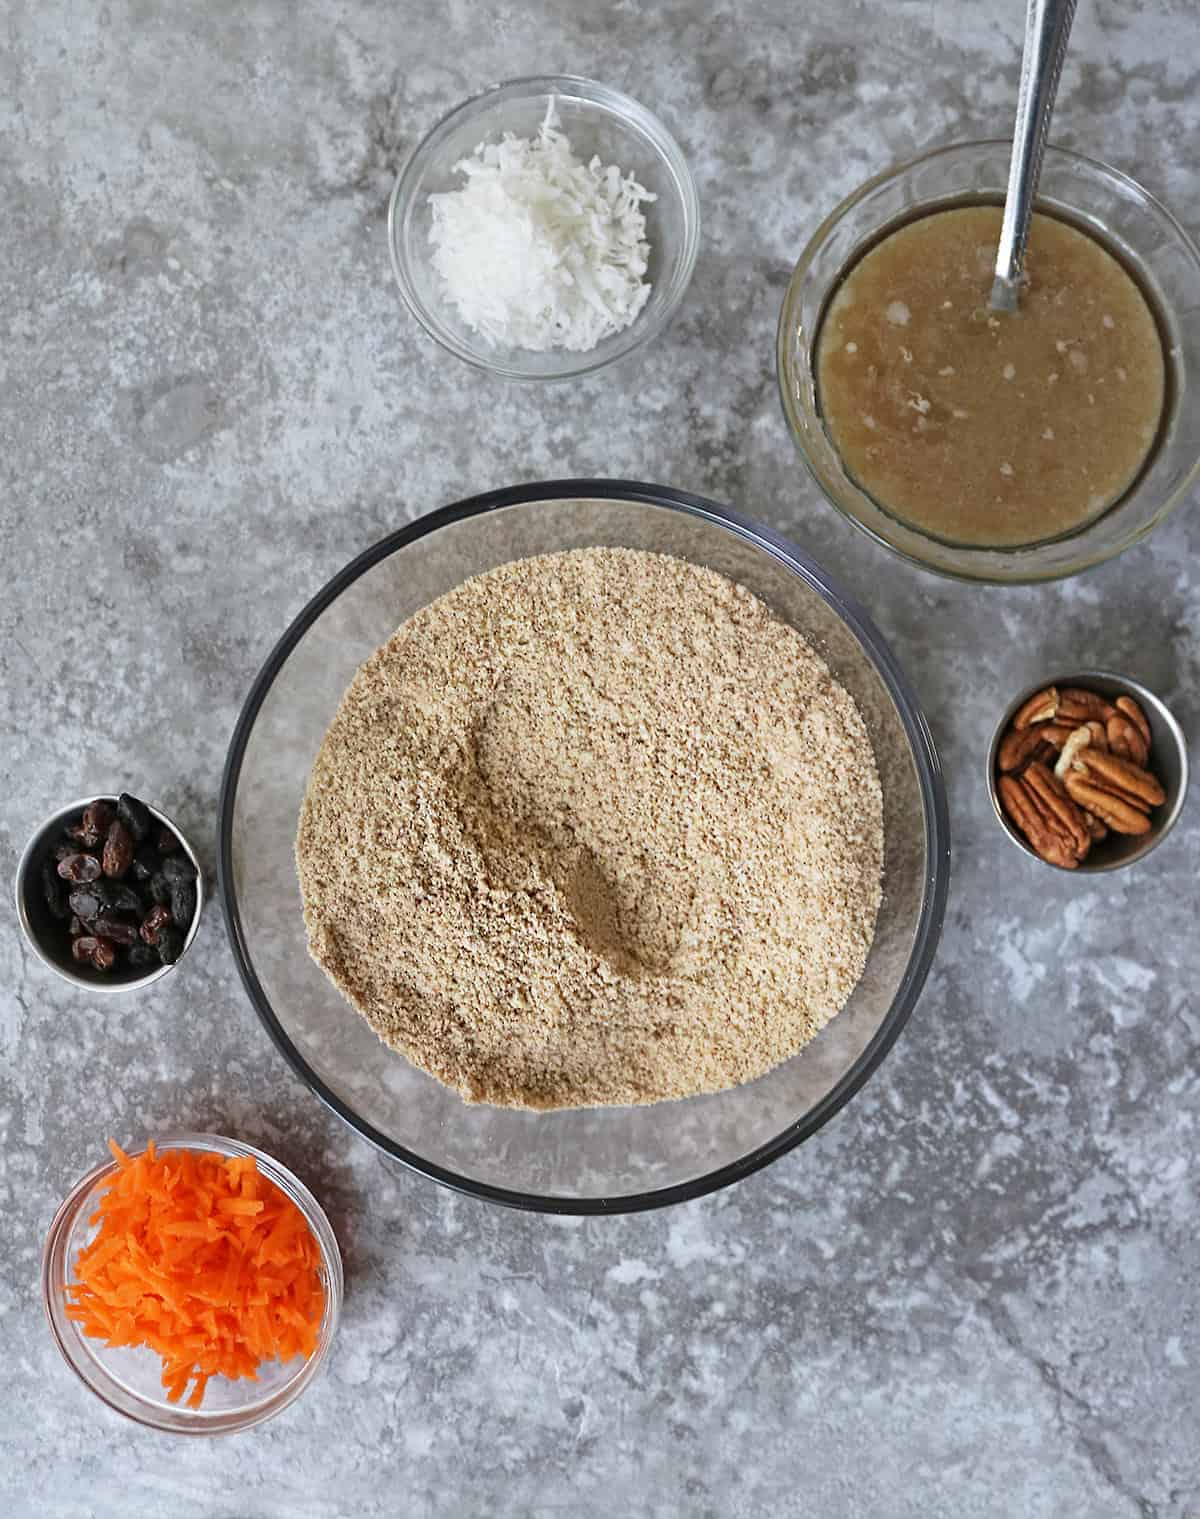 Easy Steps For Making paleo carrot cake bars - mix dry ingredients and then wet ingredients